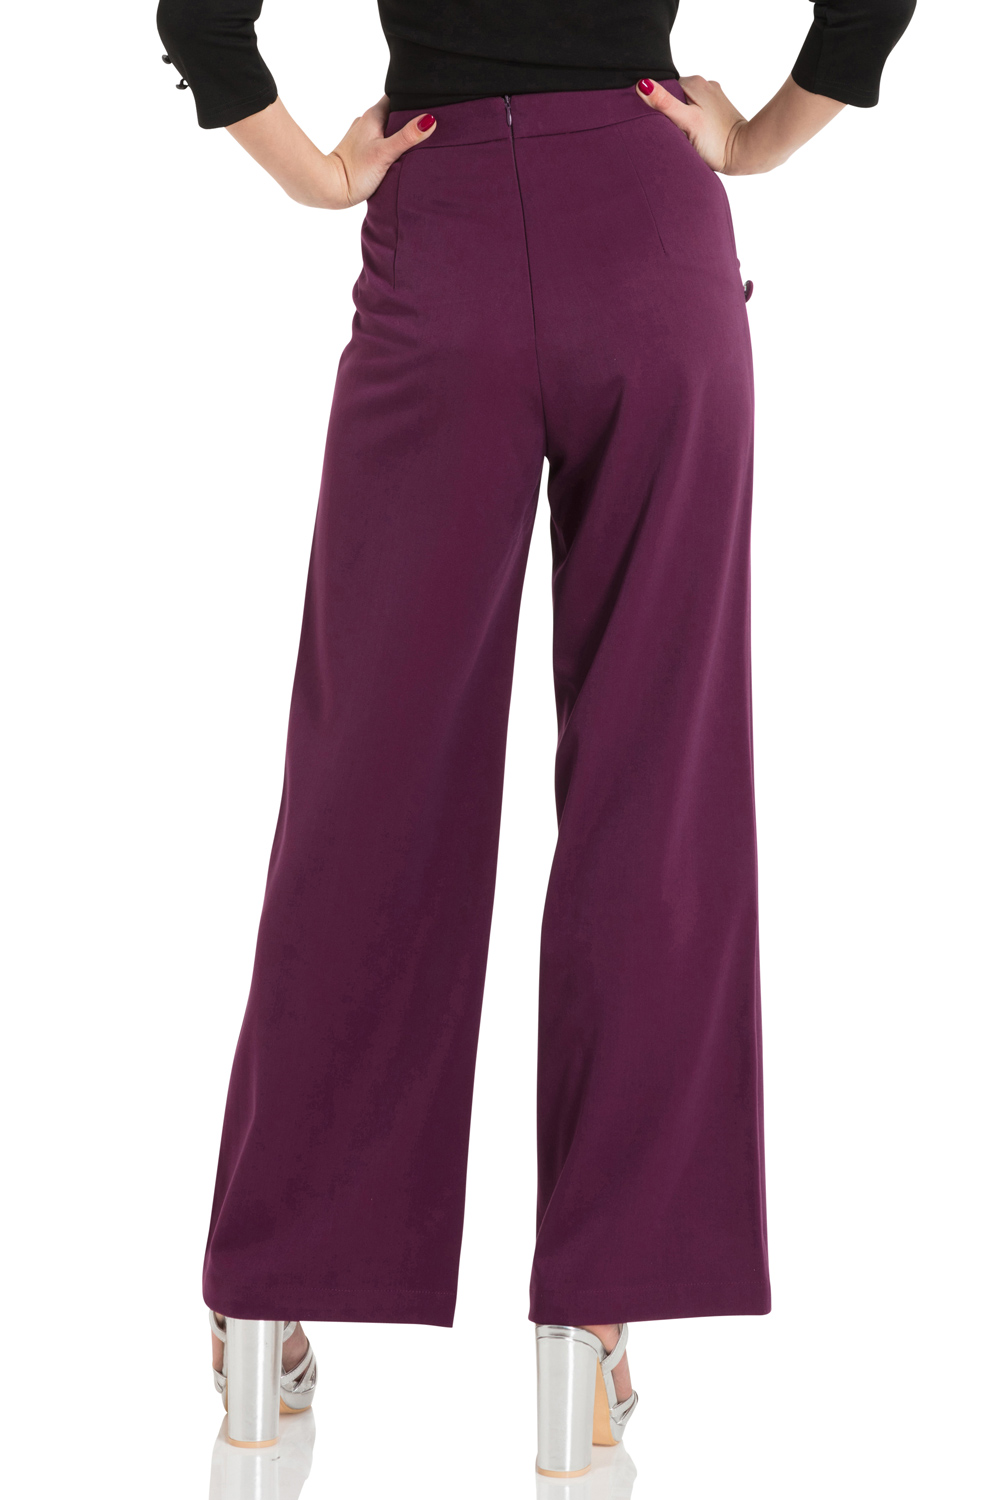 Stacey Purple 40s Style Trousers